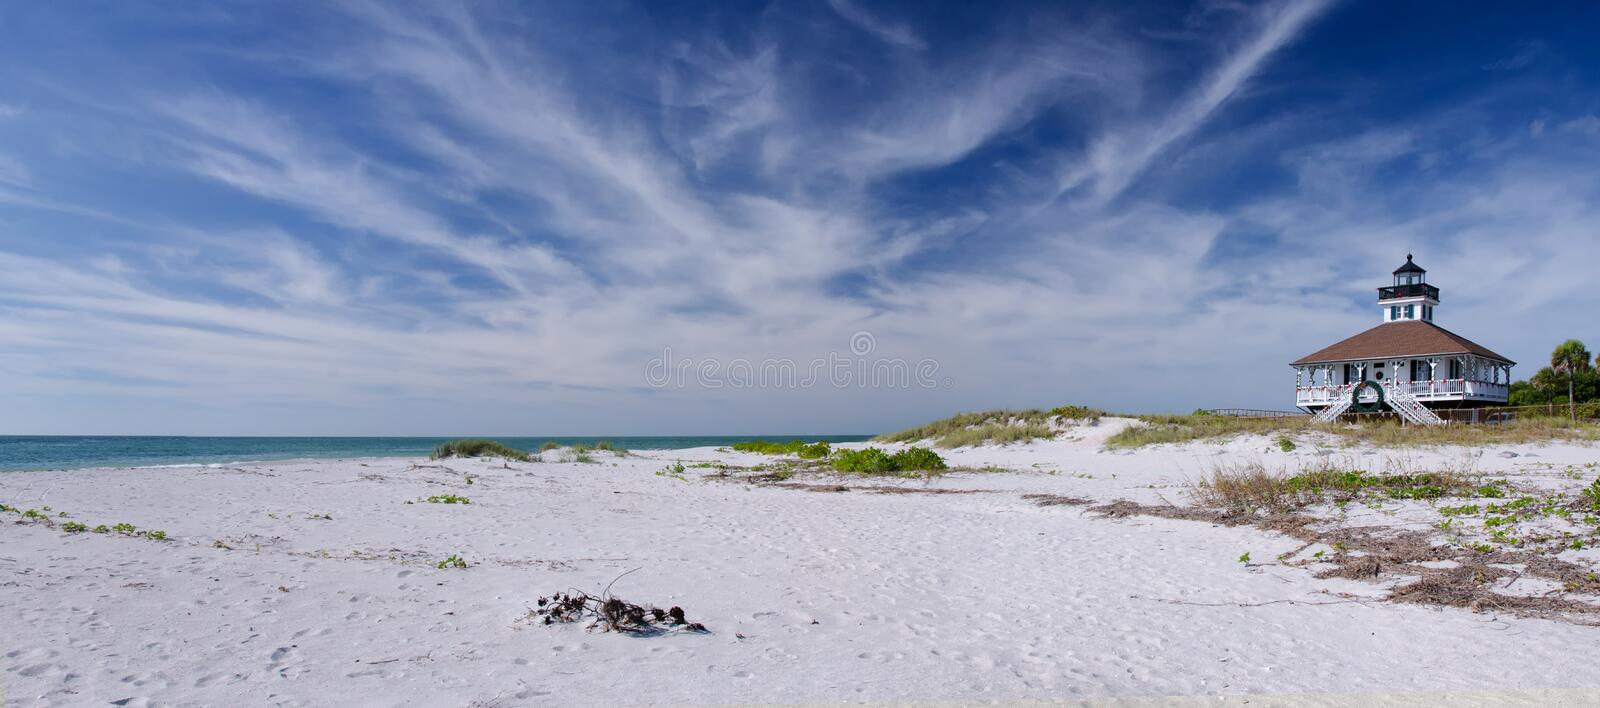 Panorama of a lighthouse on Florida's west coast stock photography